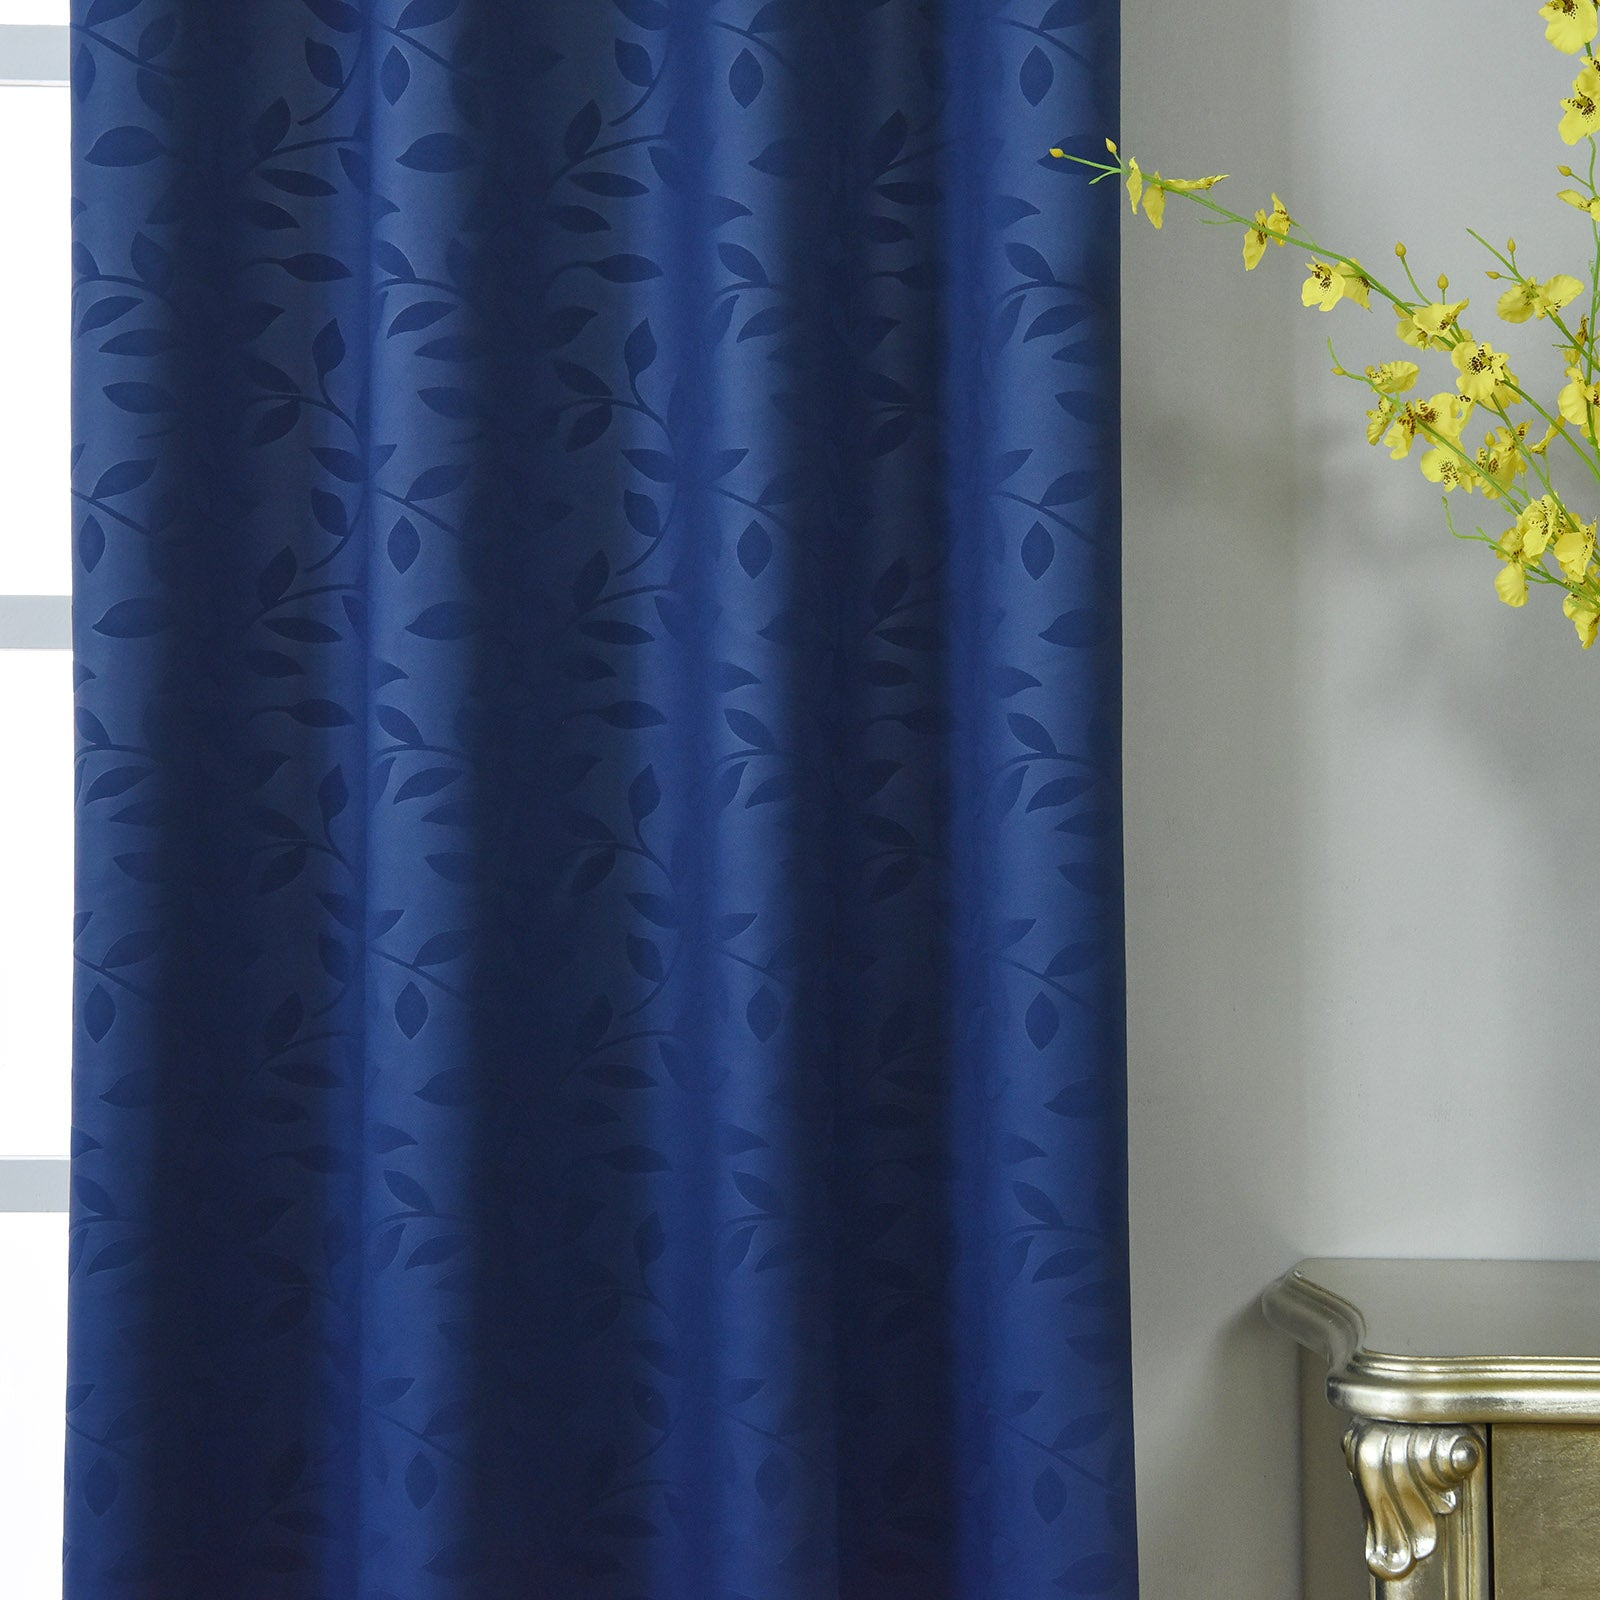 w insulated org set curtains top of blackout navy cardinal best x panel grommet curtain ideas thermal red home cheap on bronze l blue antique deals design avarii fashion find